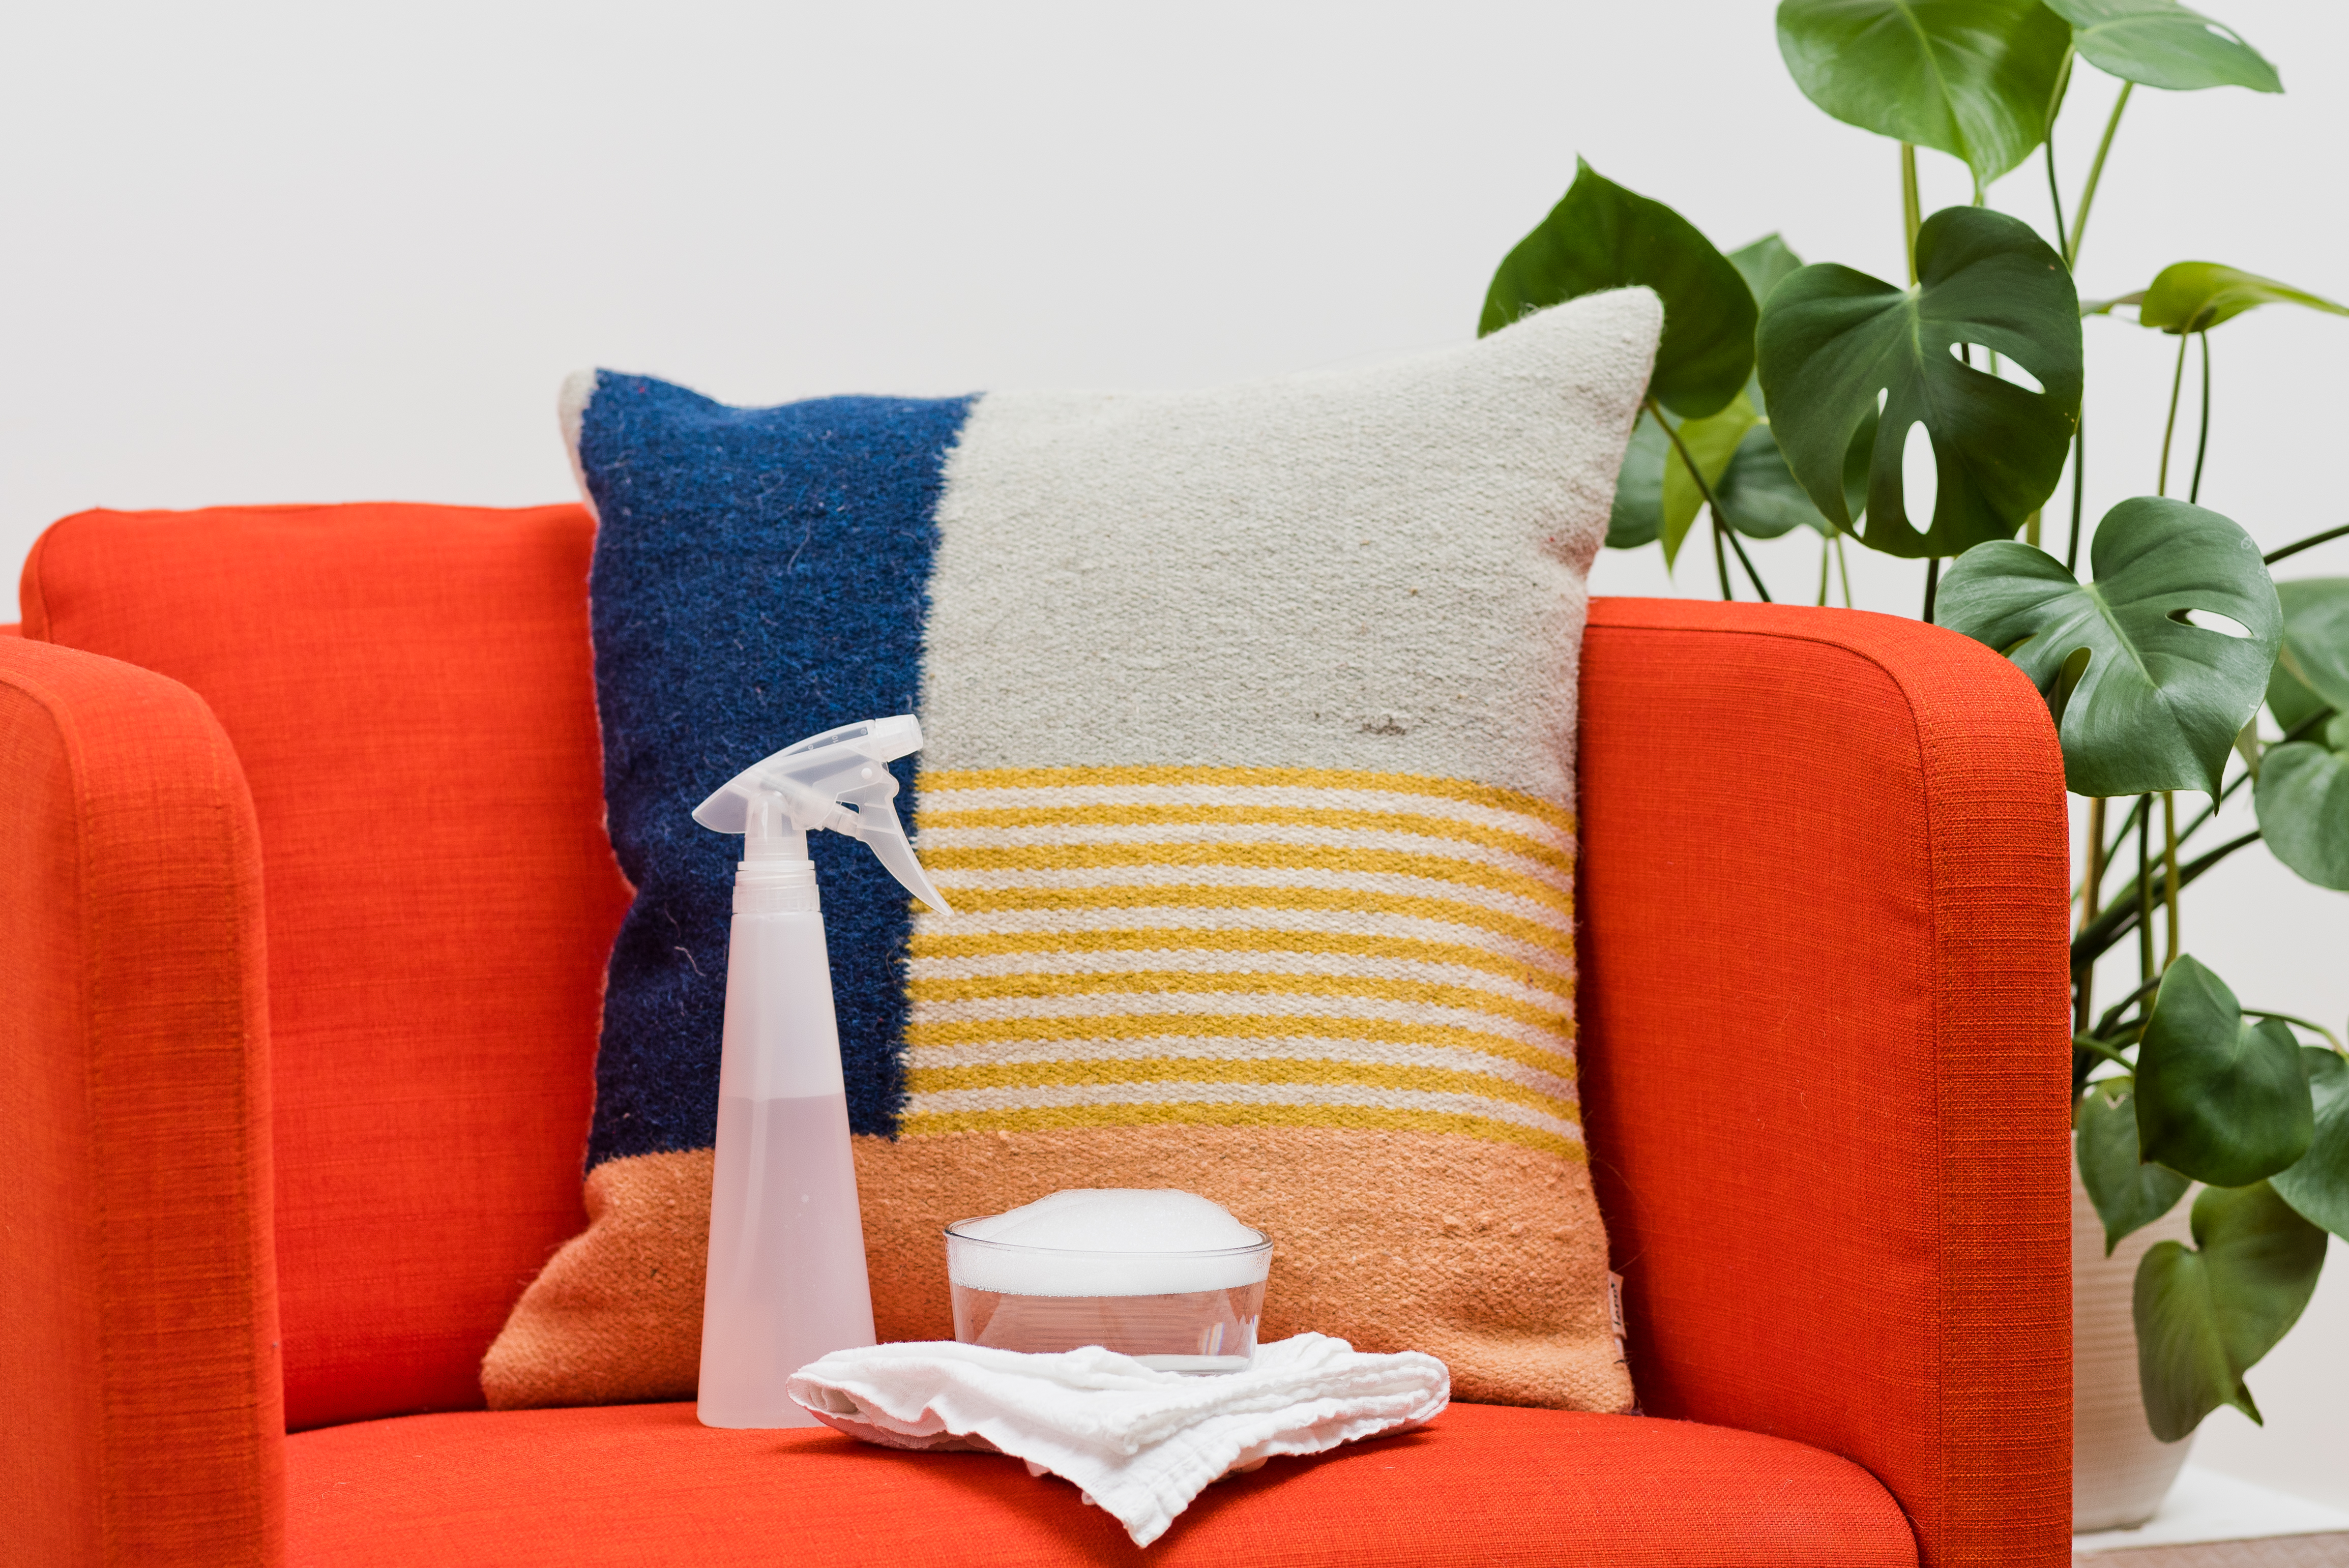 Swell How To Clean Upholstery Couch Stains Remove Couch Squirreltailoven Fun Painted Chair Ideas Images Squirreltailovenorg